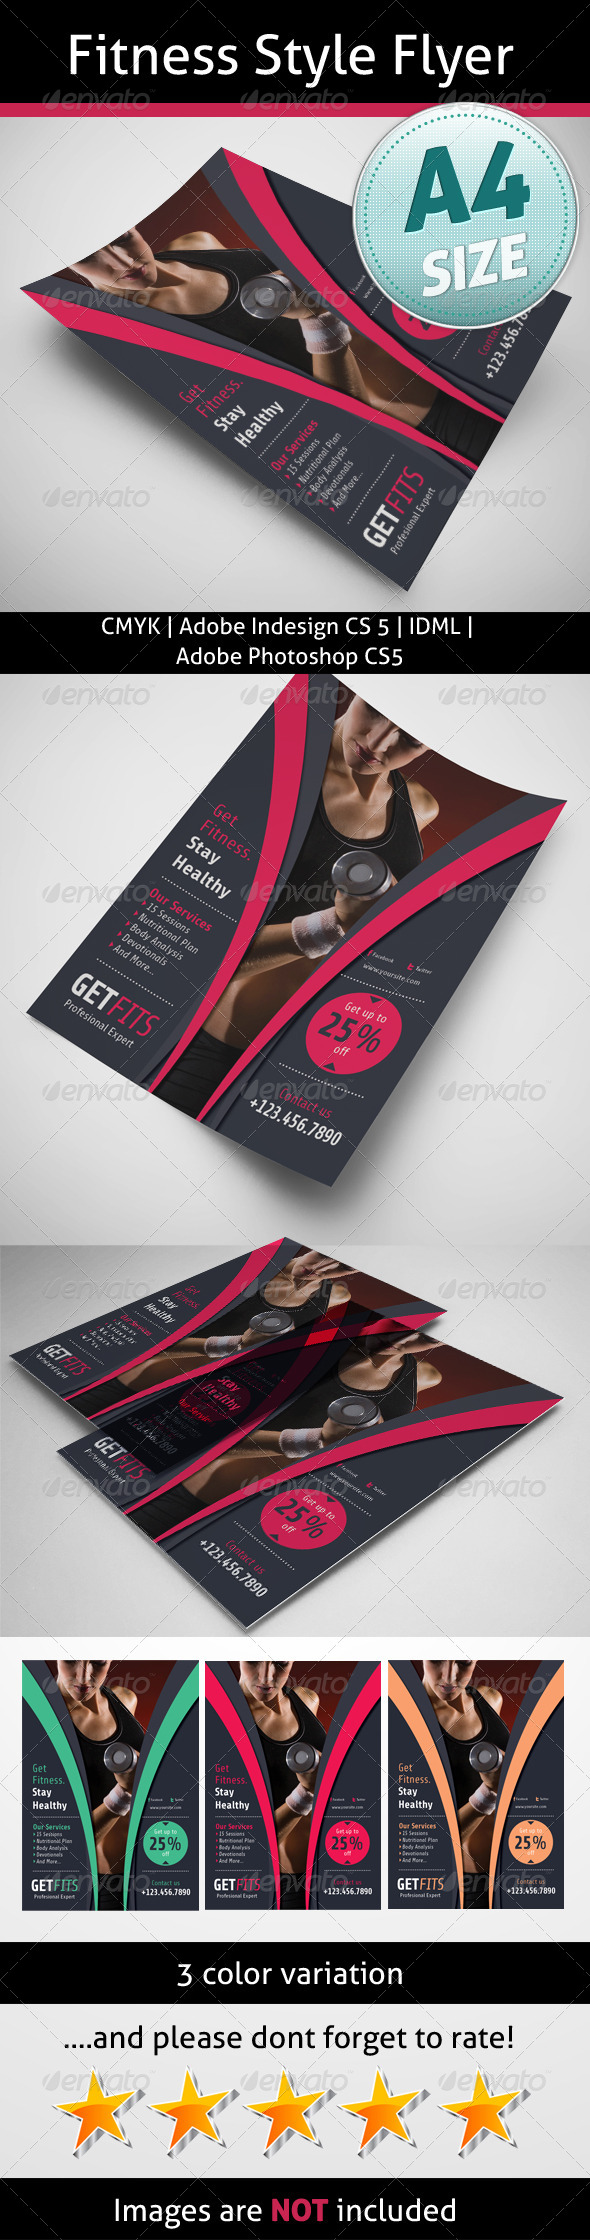 GraphicRiver Fitness Style Flyer 5237118